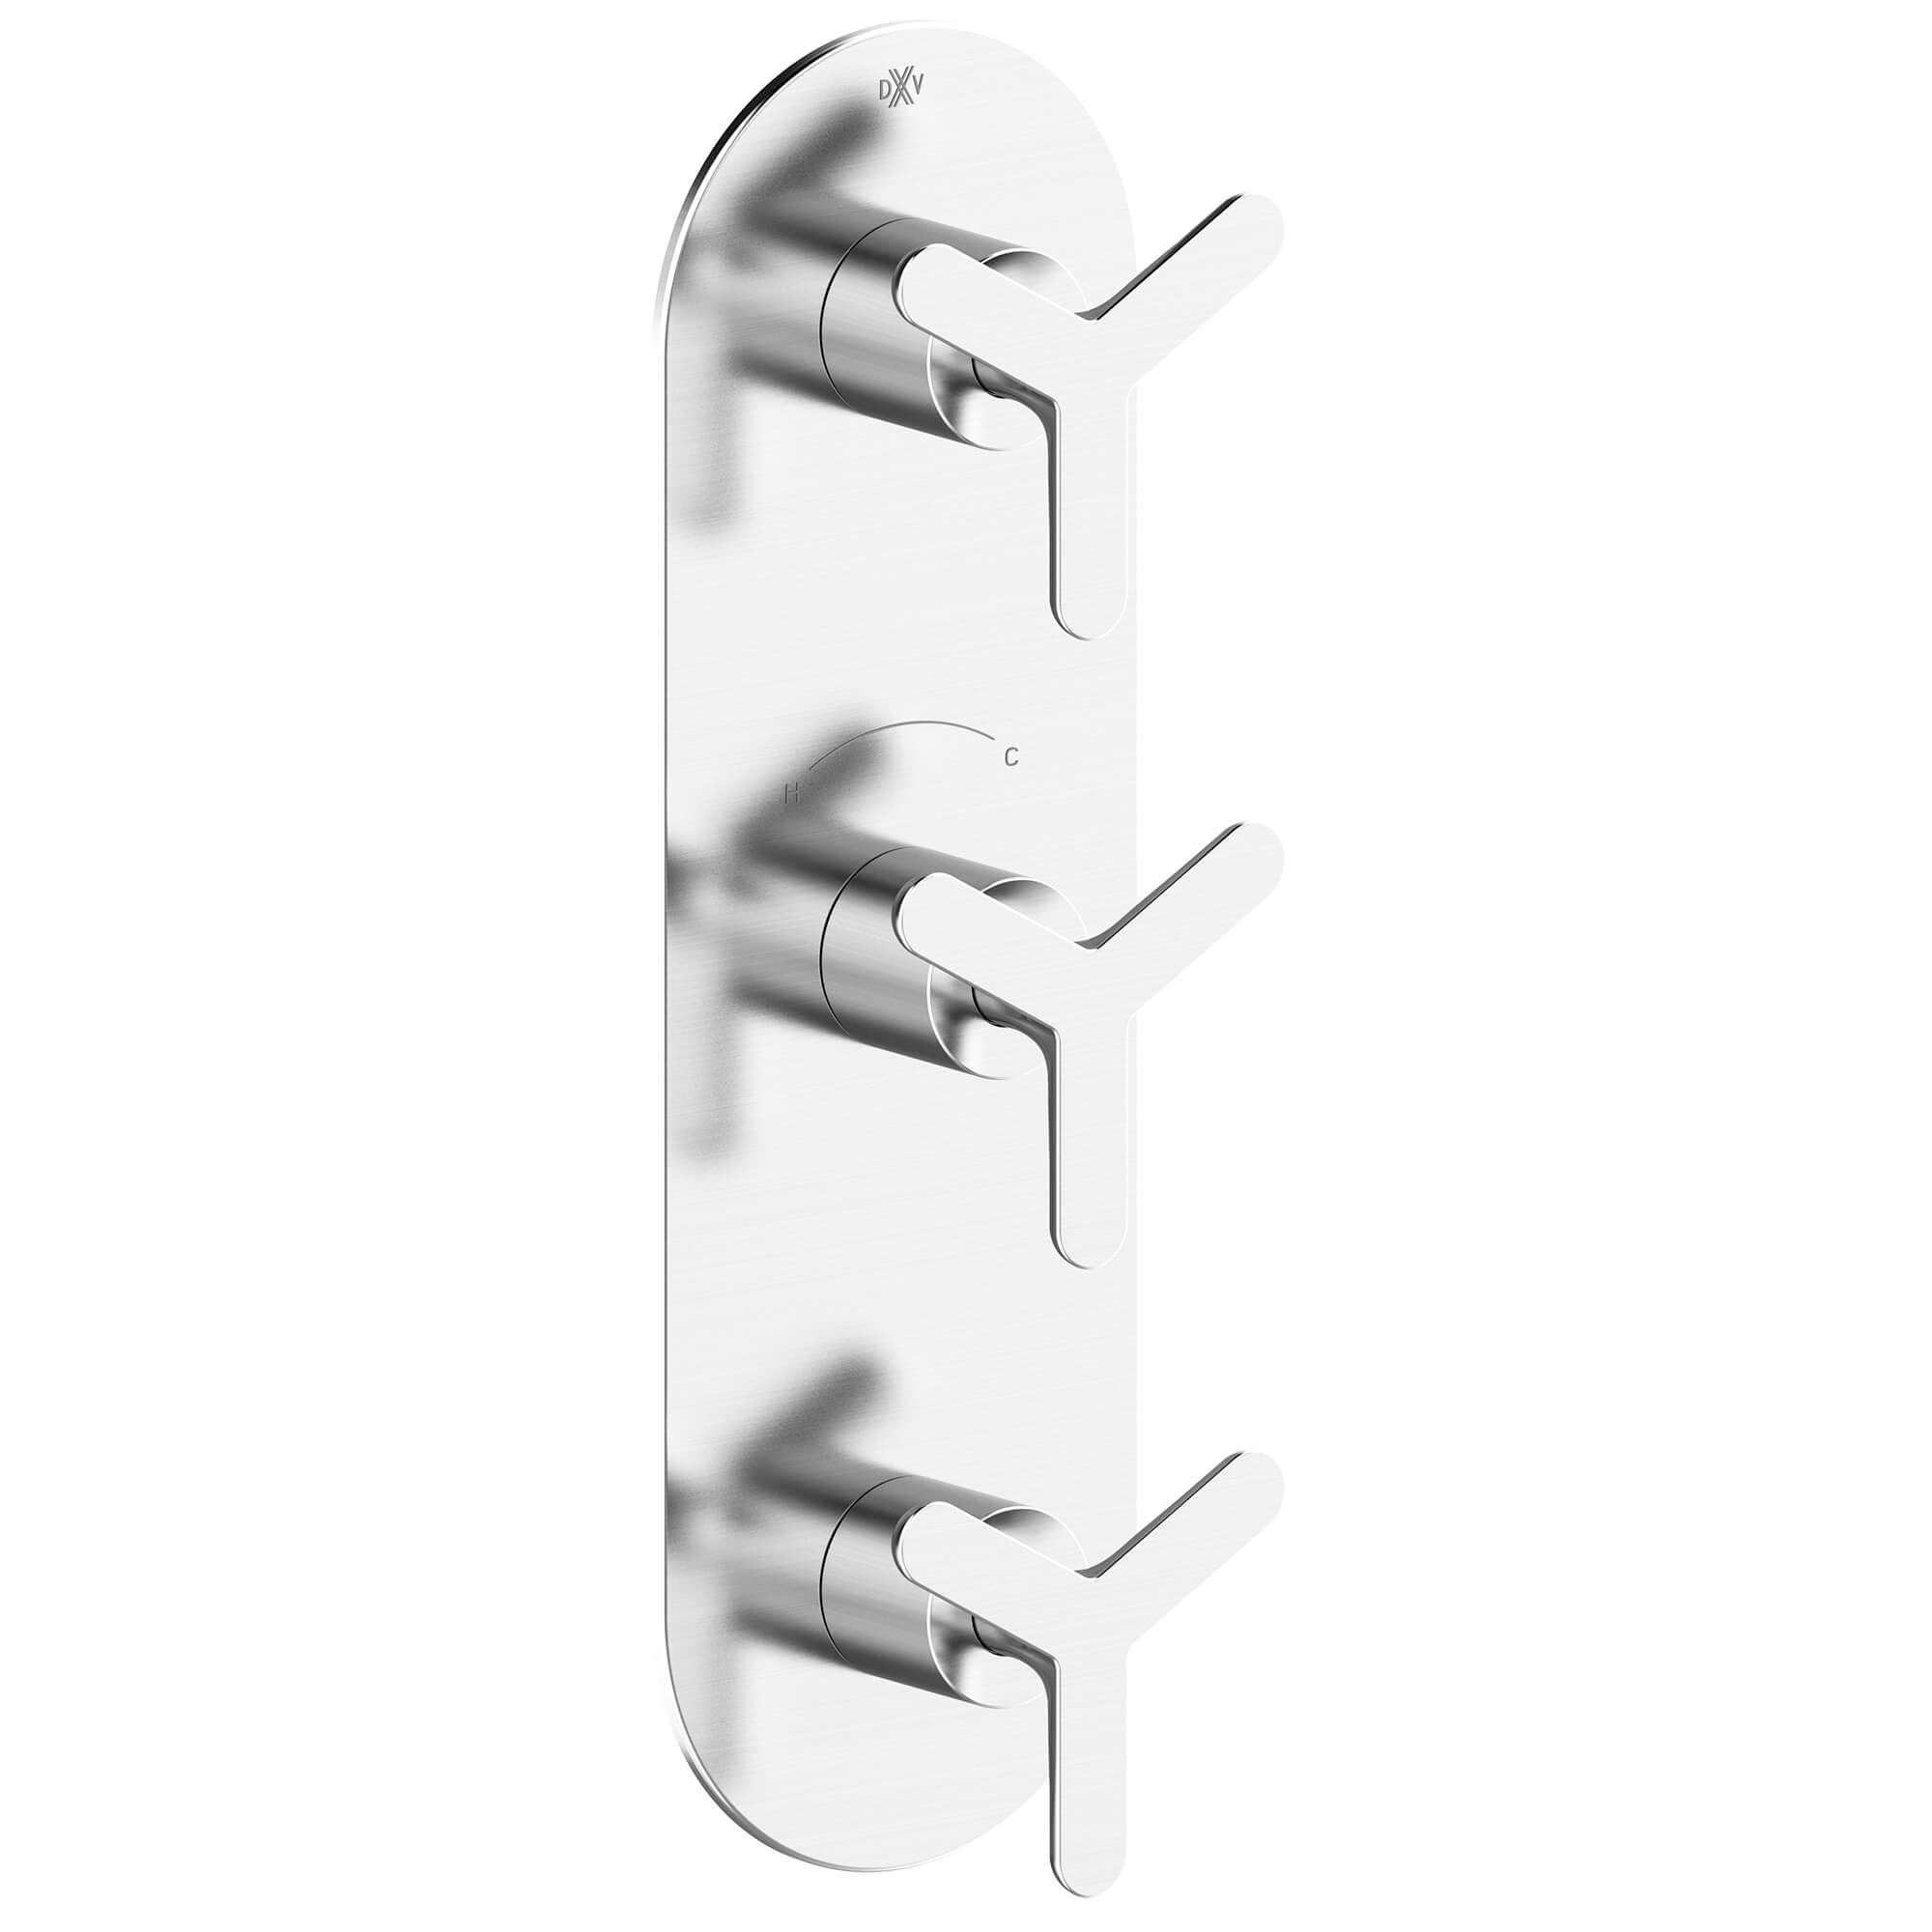 Percy 3-Handle Thermostatic Shower Valve Trim with Tri-Spoke Handles